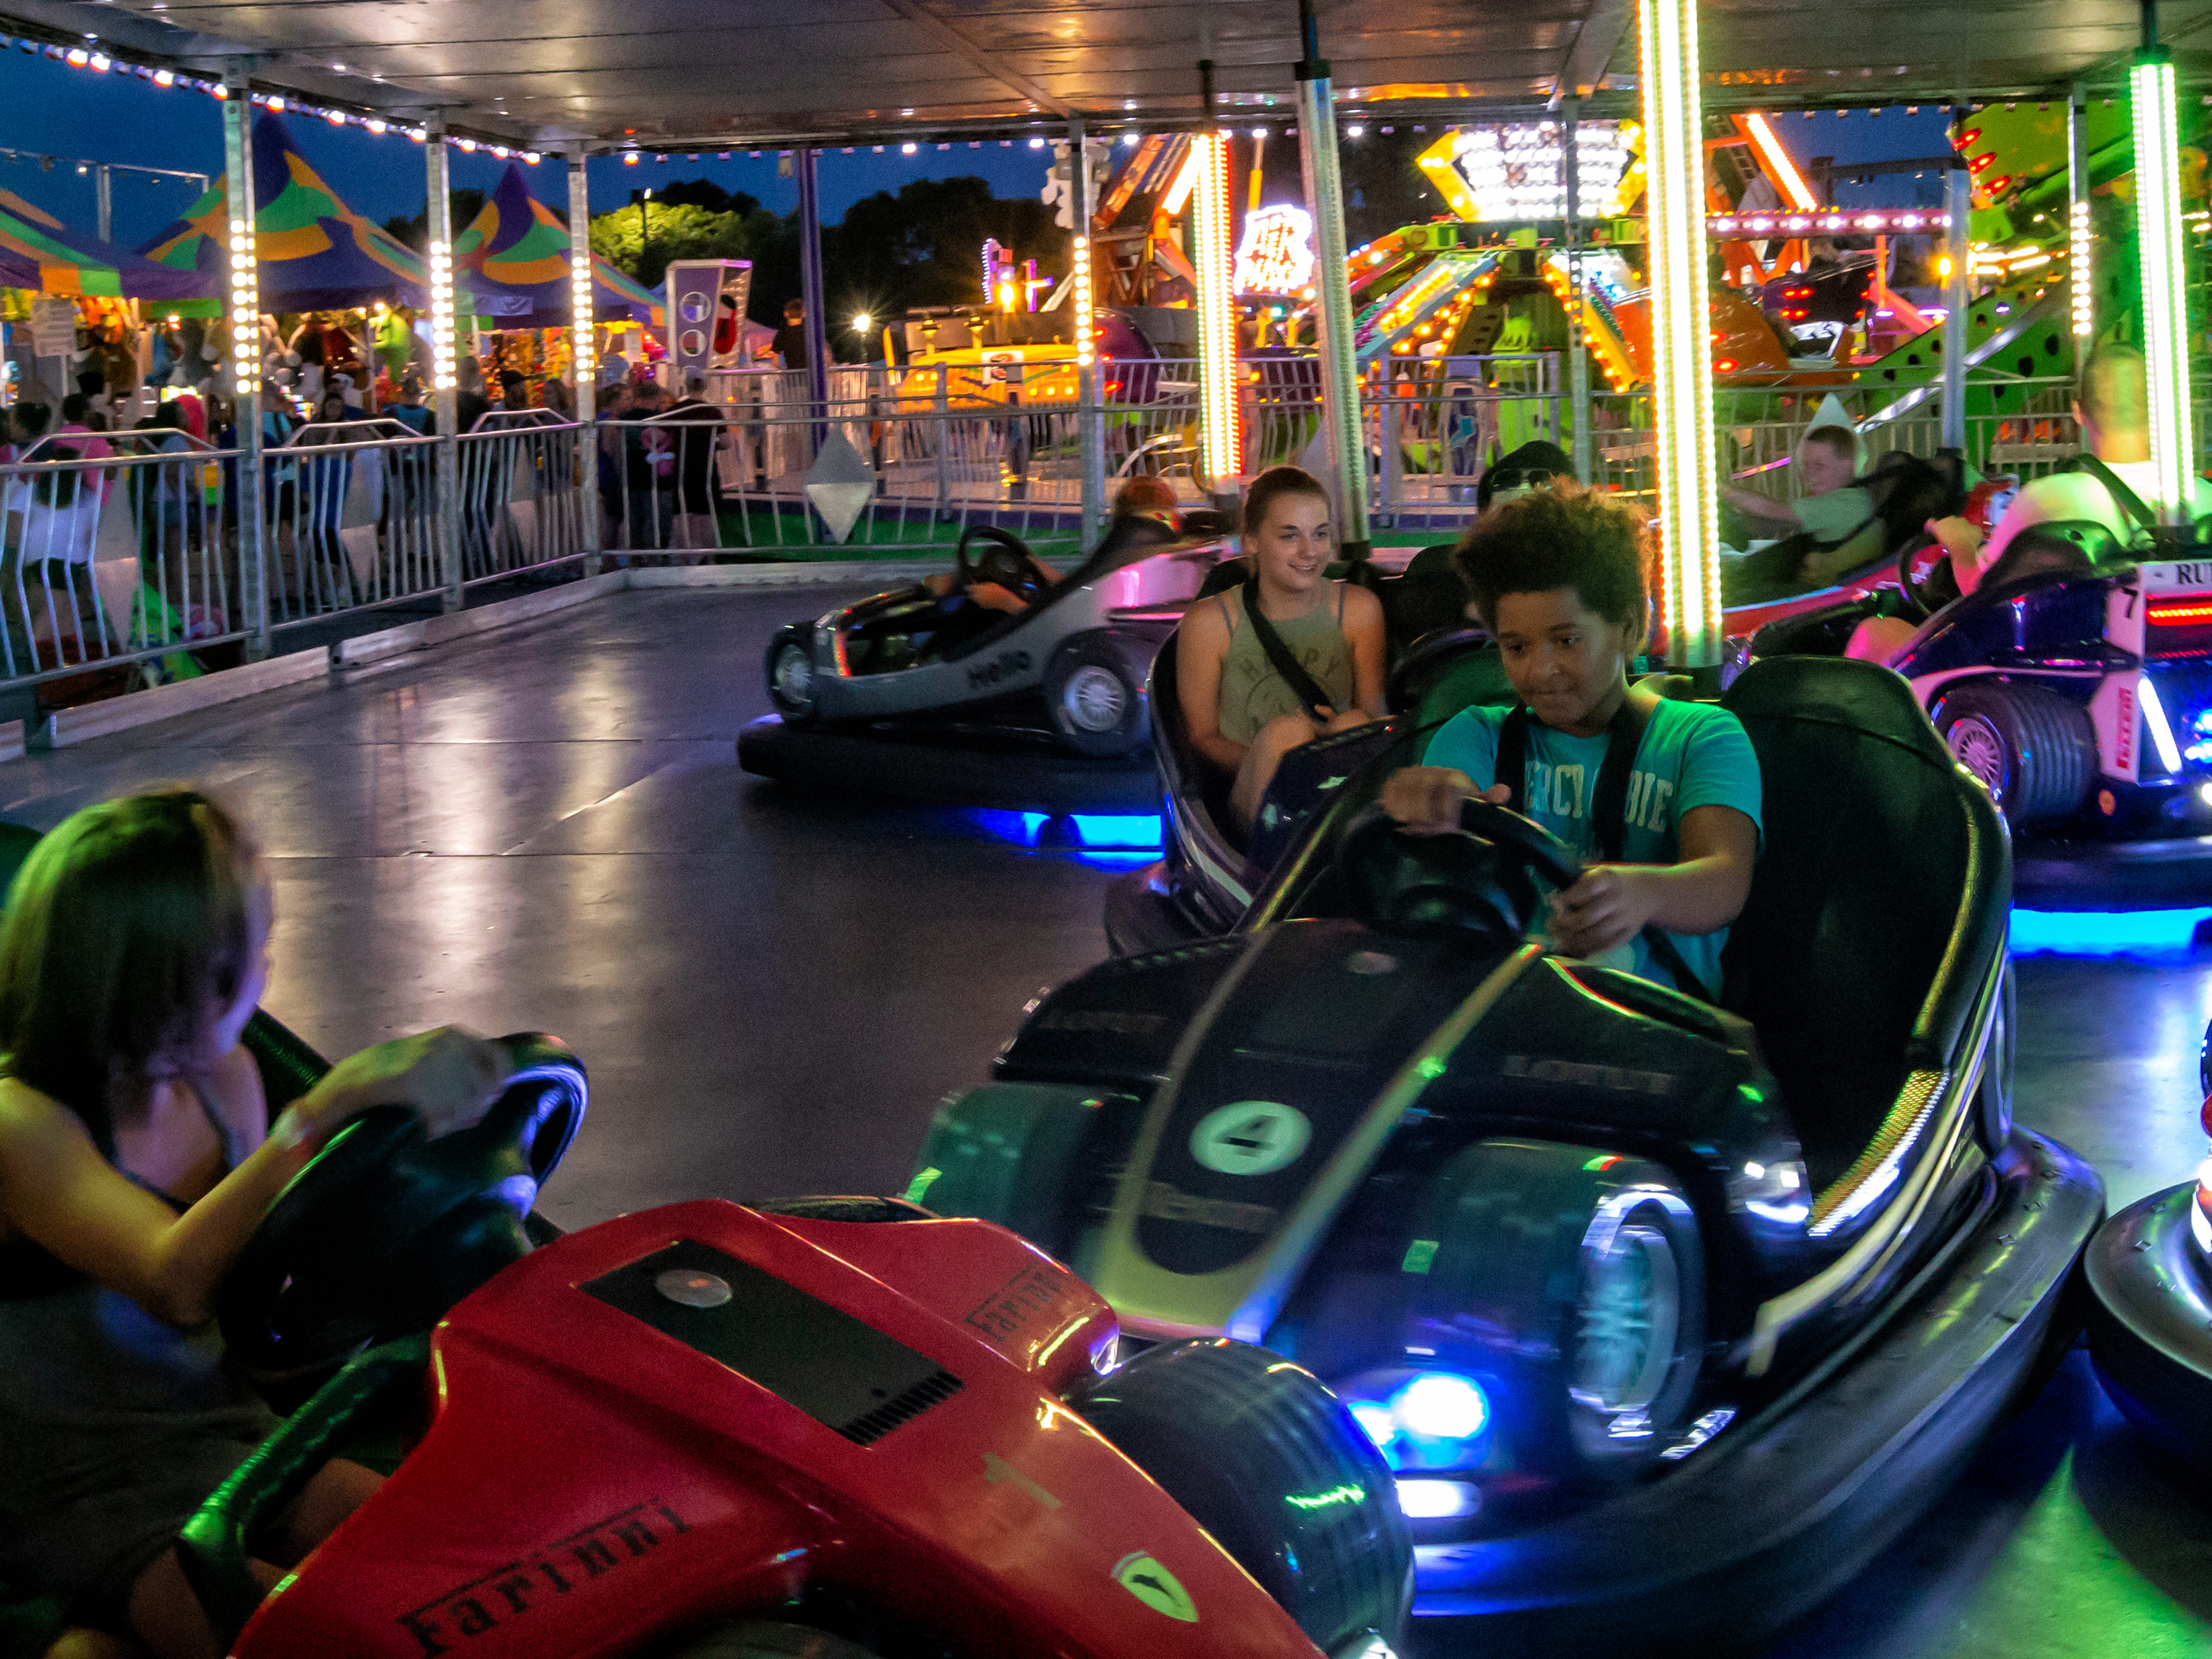 People ride the bumper cars during the Winnebago County Fair on Saturday, Aug. 4, 2018.